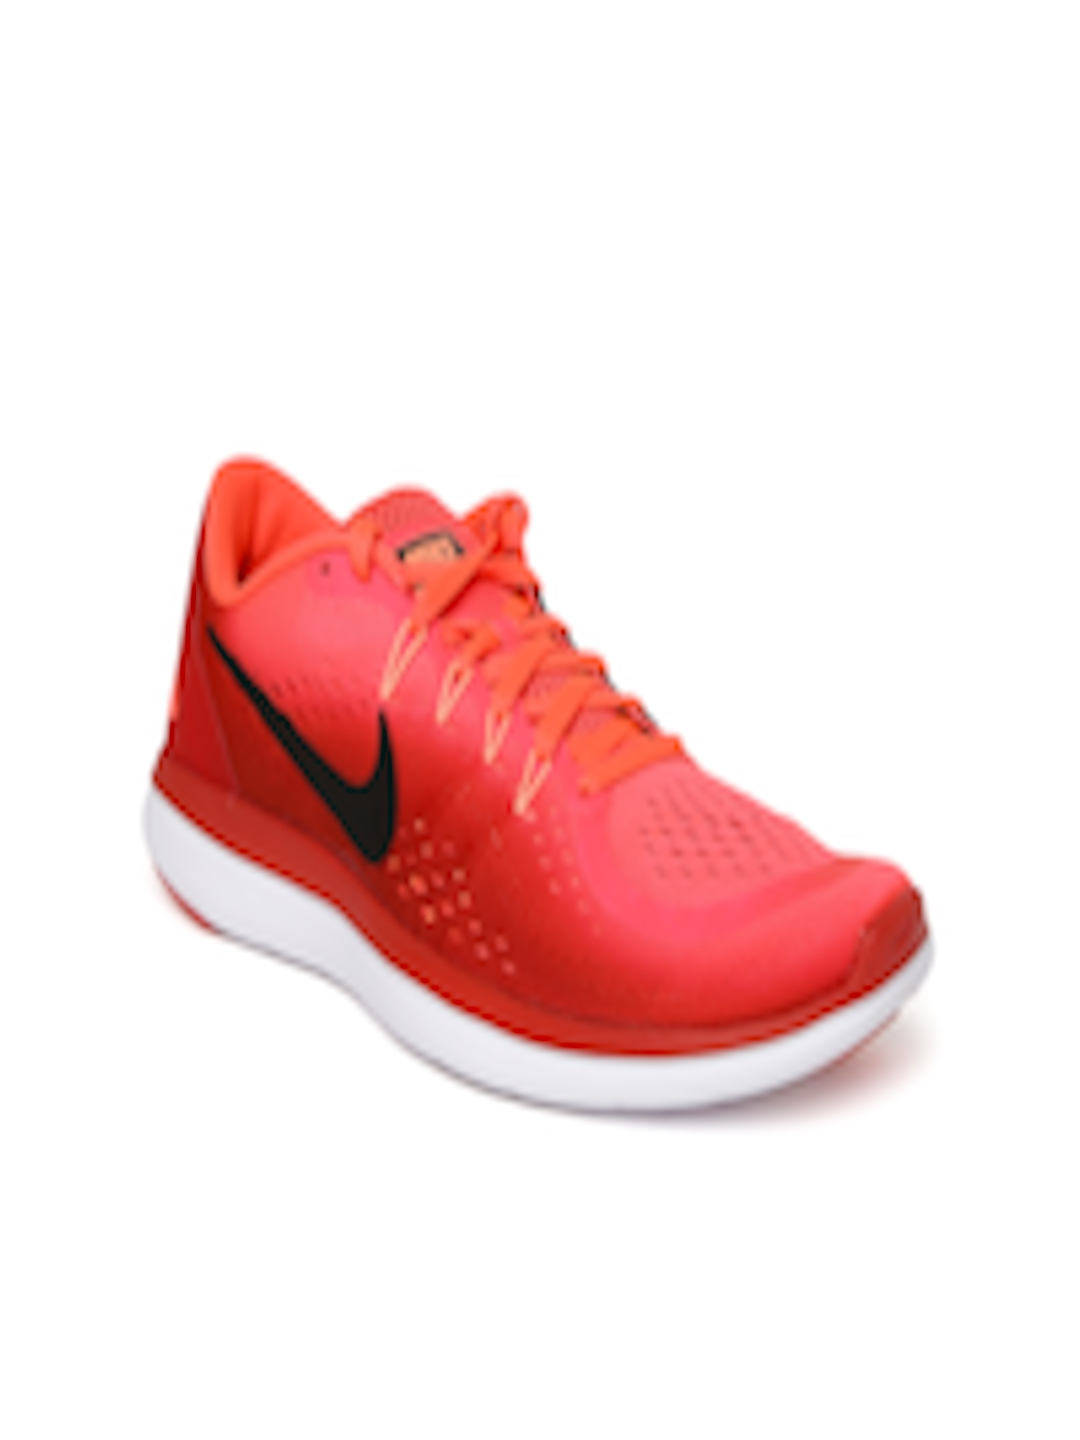 a4ef3eae1d7cb Buy Nike Men Neon Pink NIKE FLEX 2017 RN Running Shoes - Sports Shoes for  Men 1963044